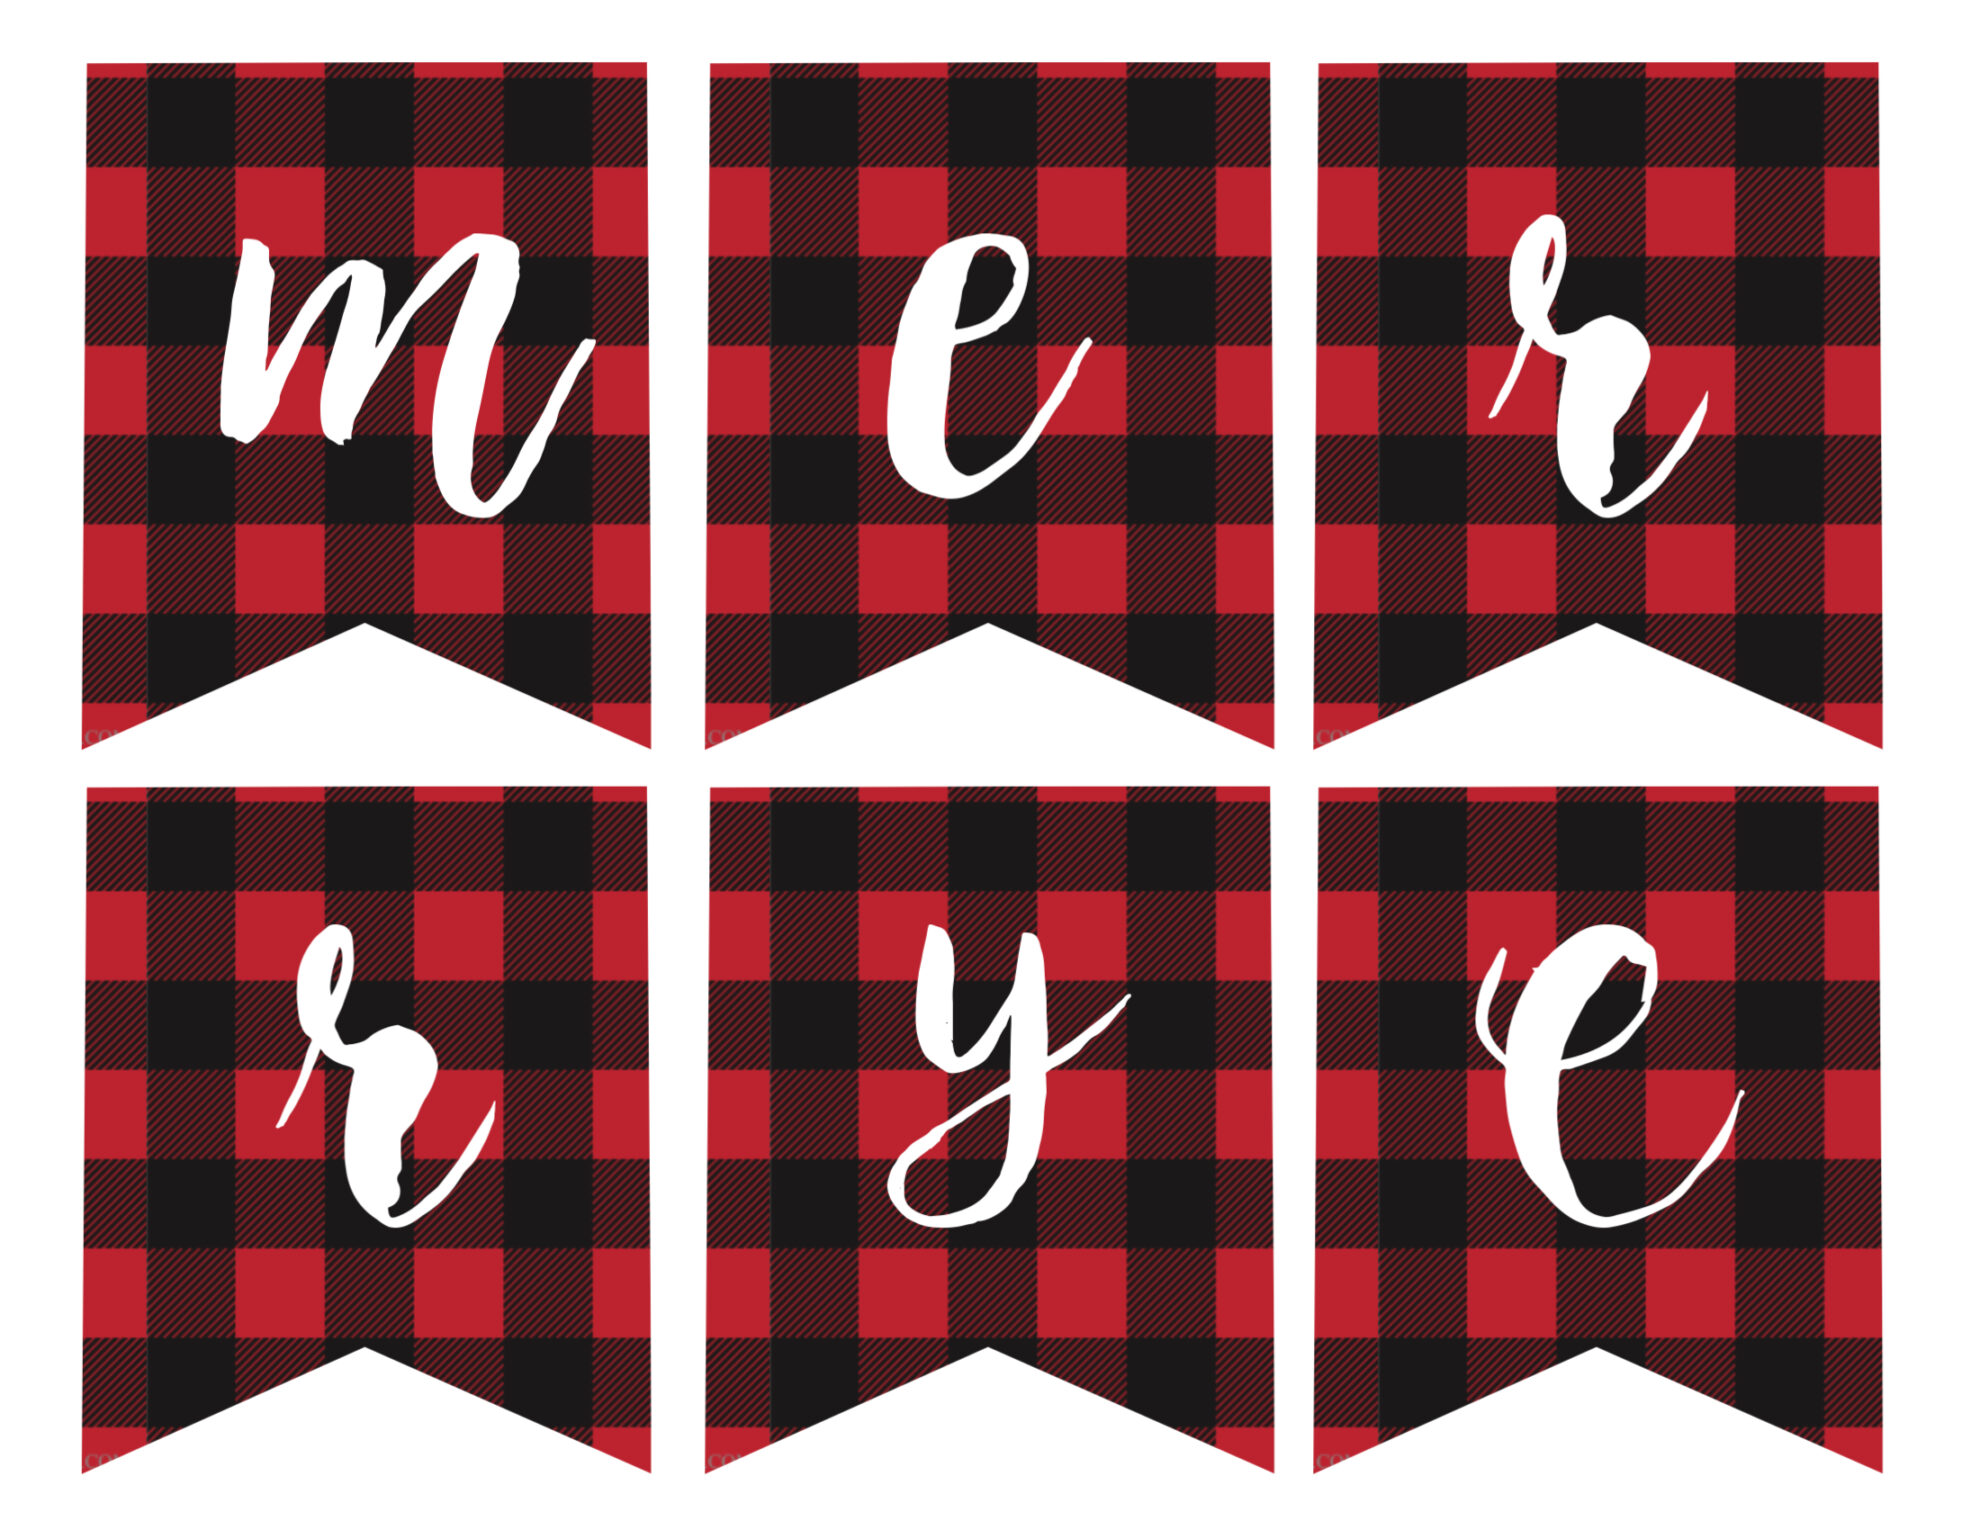 photograph about Merry Christmas Banner Printable titled Totally free Printable Merry Xmas Banner - Paper Path Layout